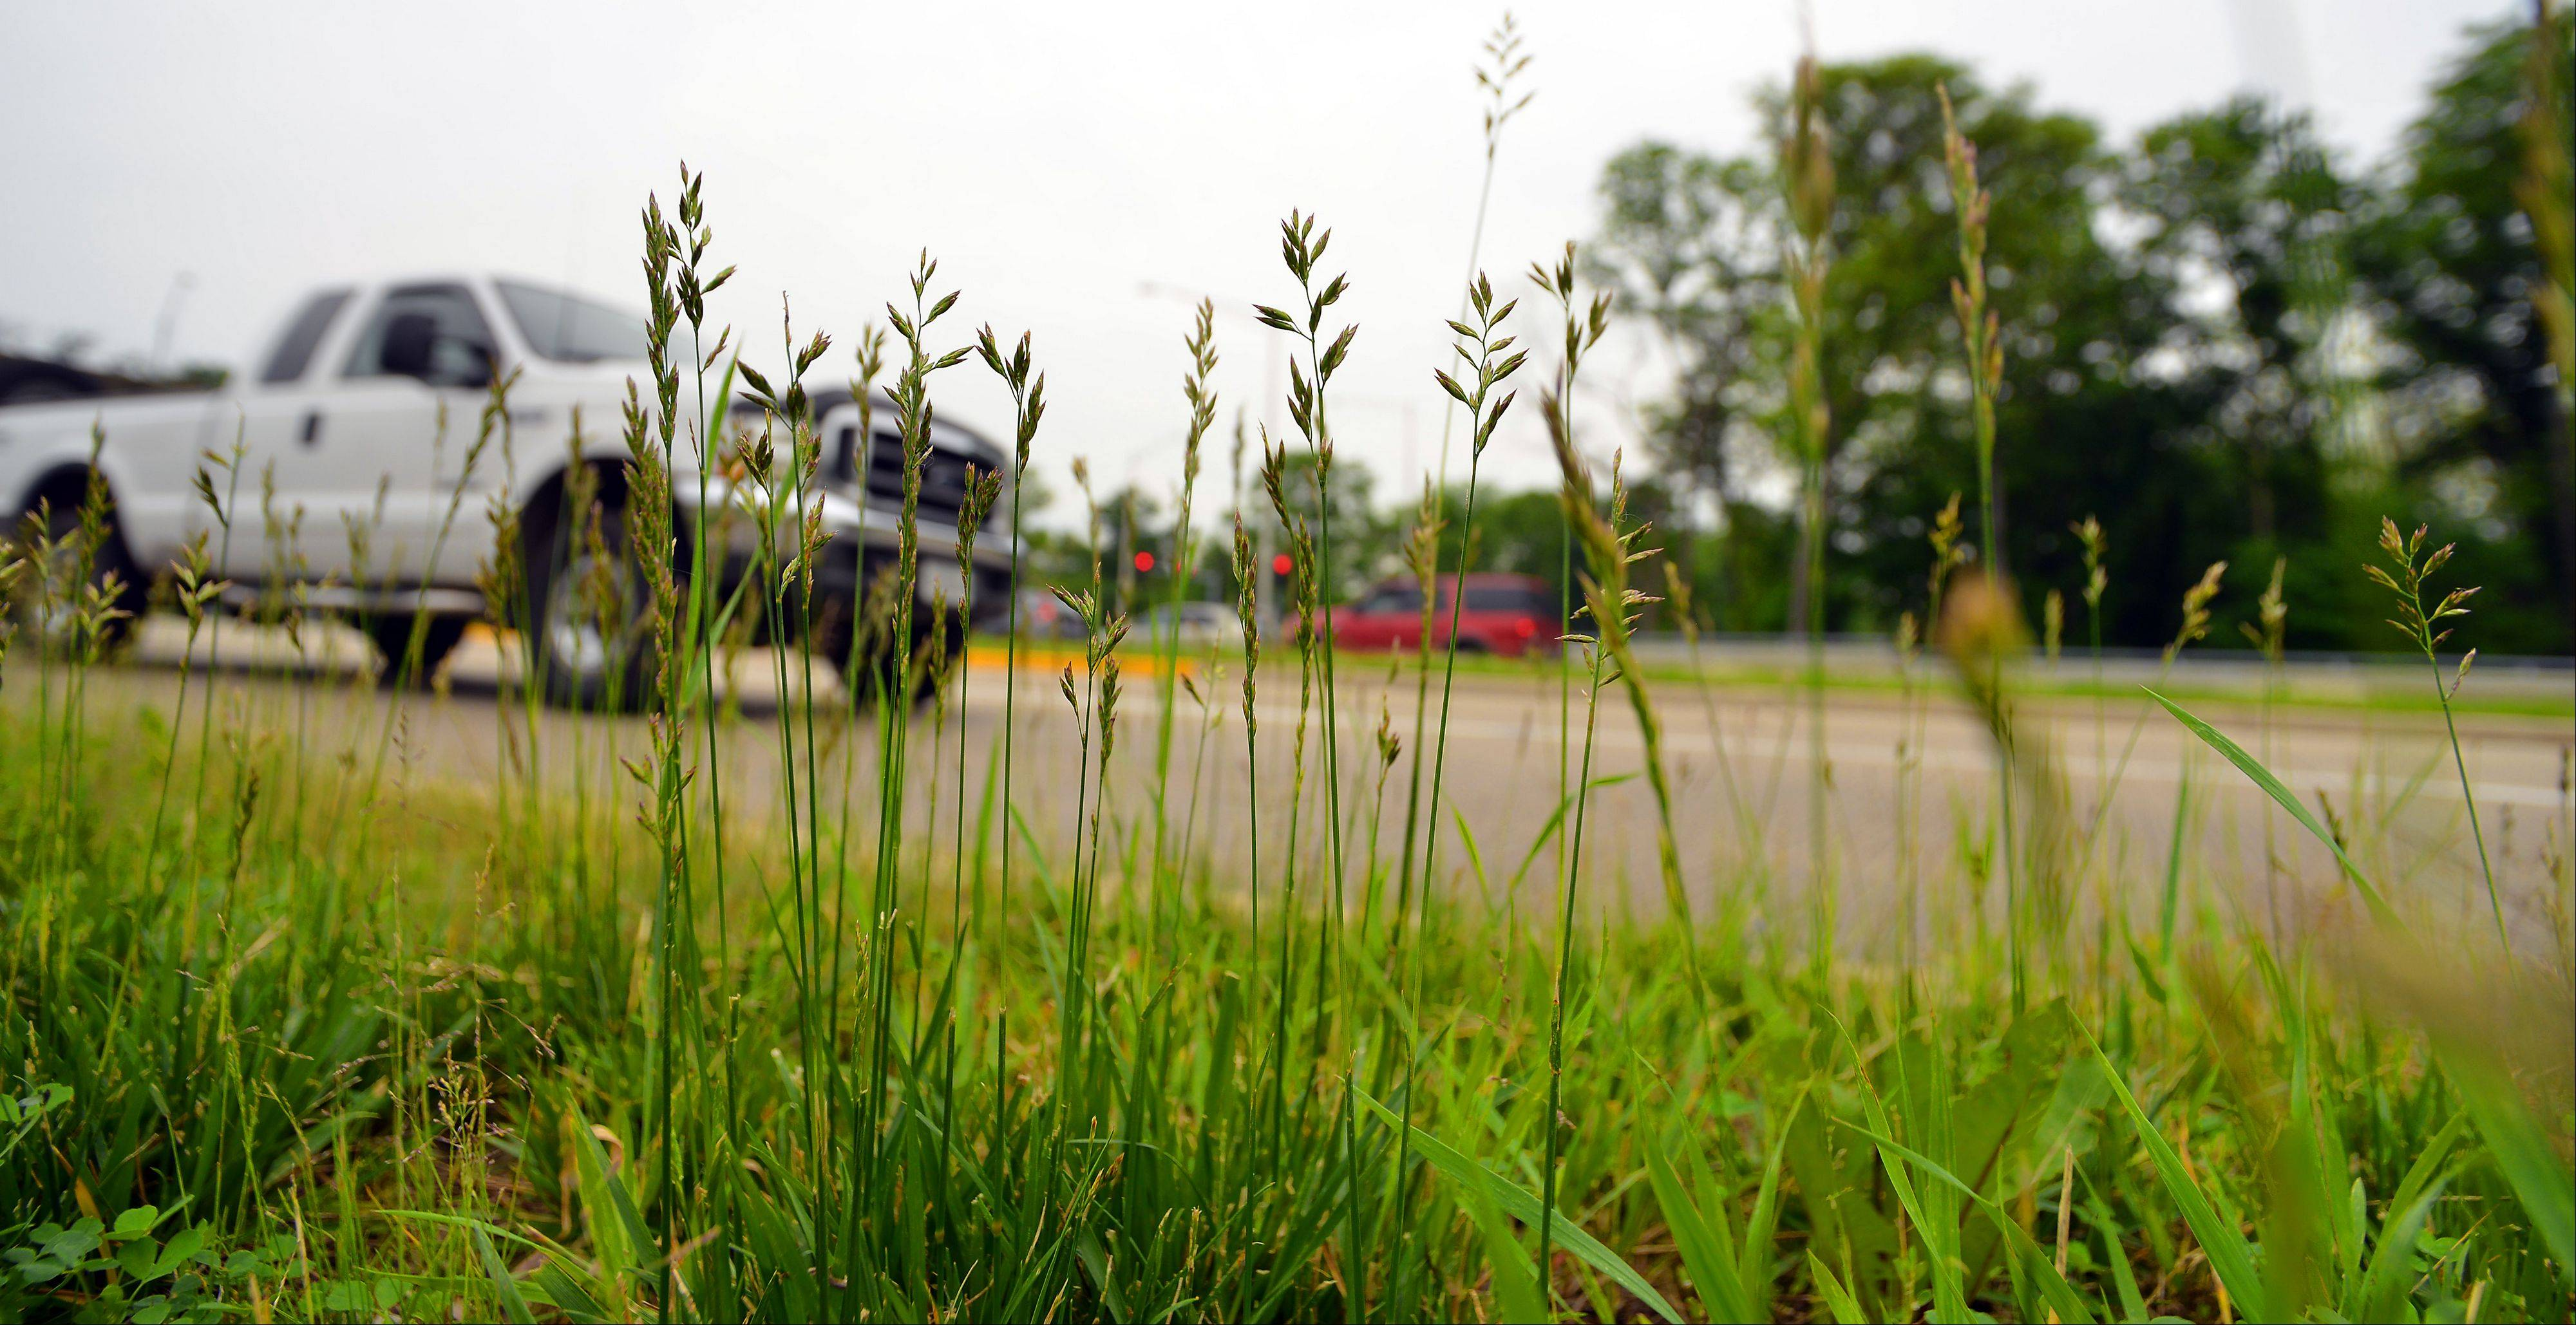 Prospect Heights officials agreed this week to hire seasonal help in an effort to combat unkempt grass, like the intersection around River Road and Milwaukee Avenue.